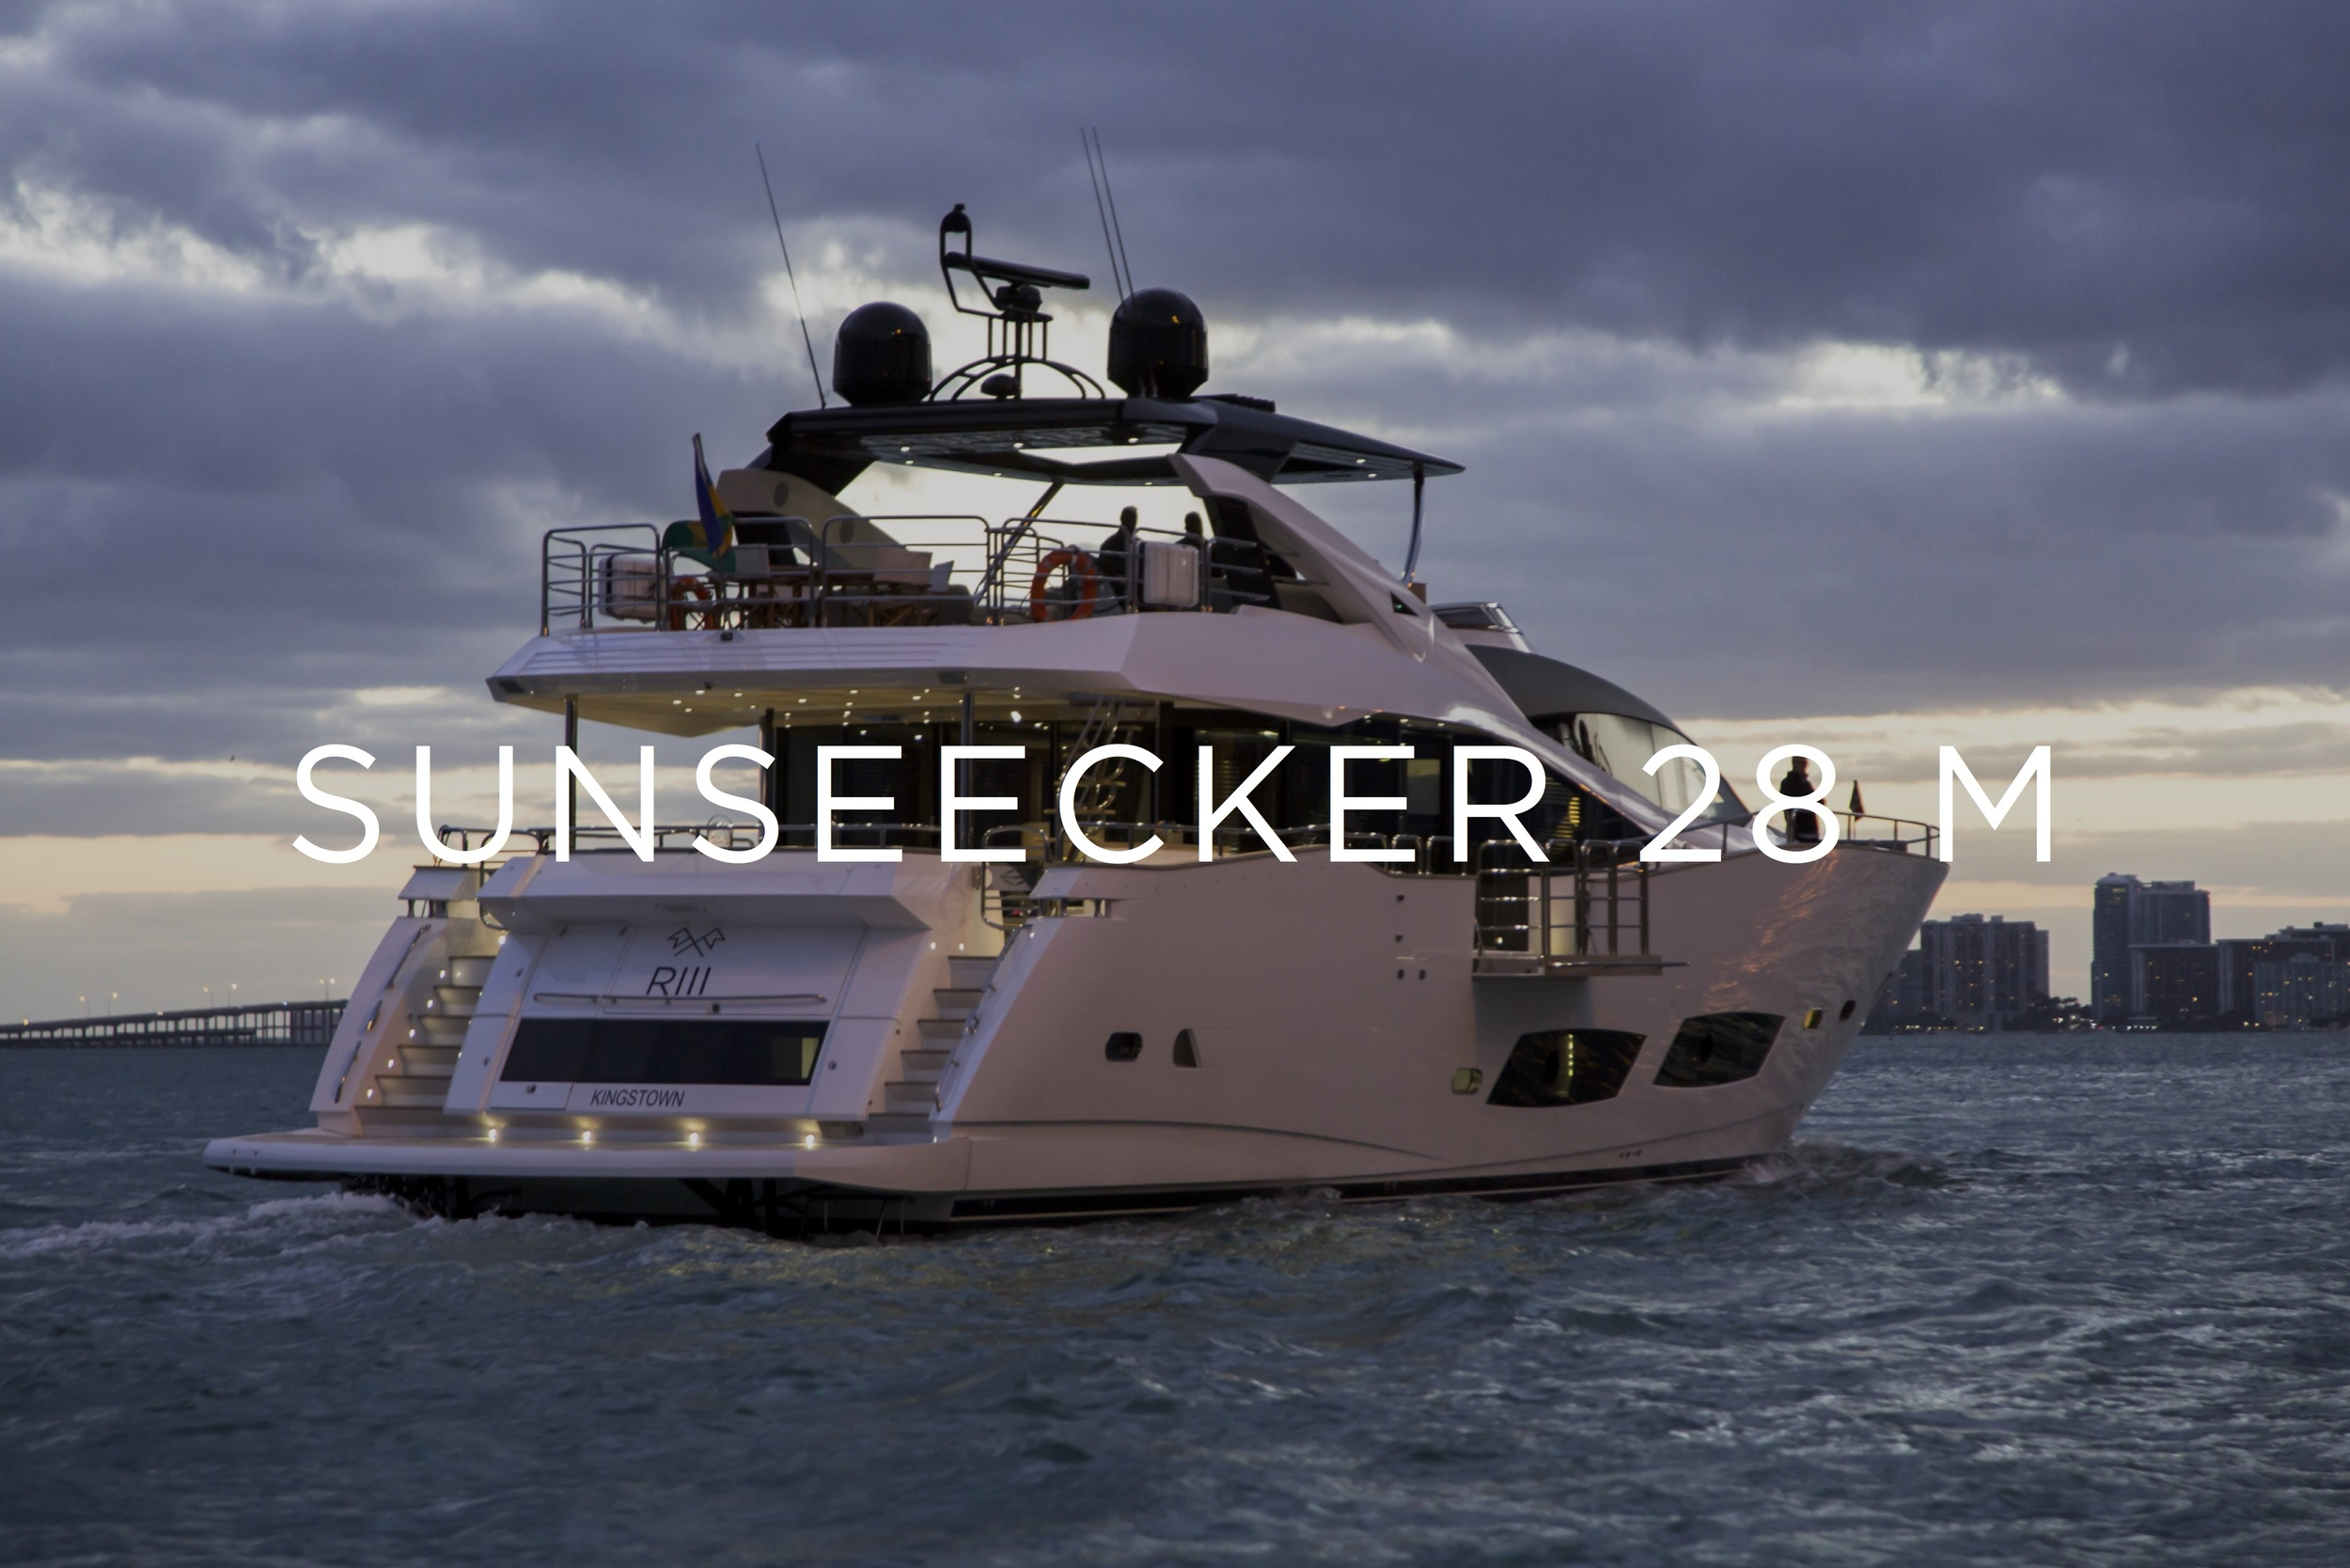 SUNSEECKER 28 M - MIAMI